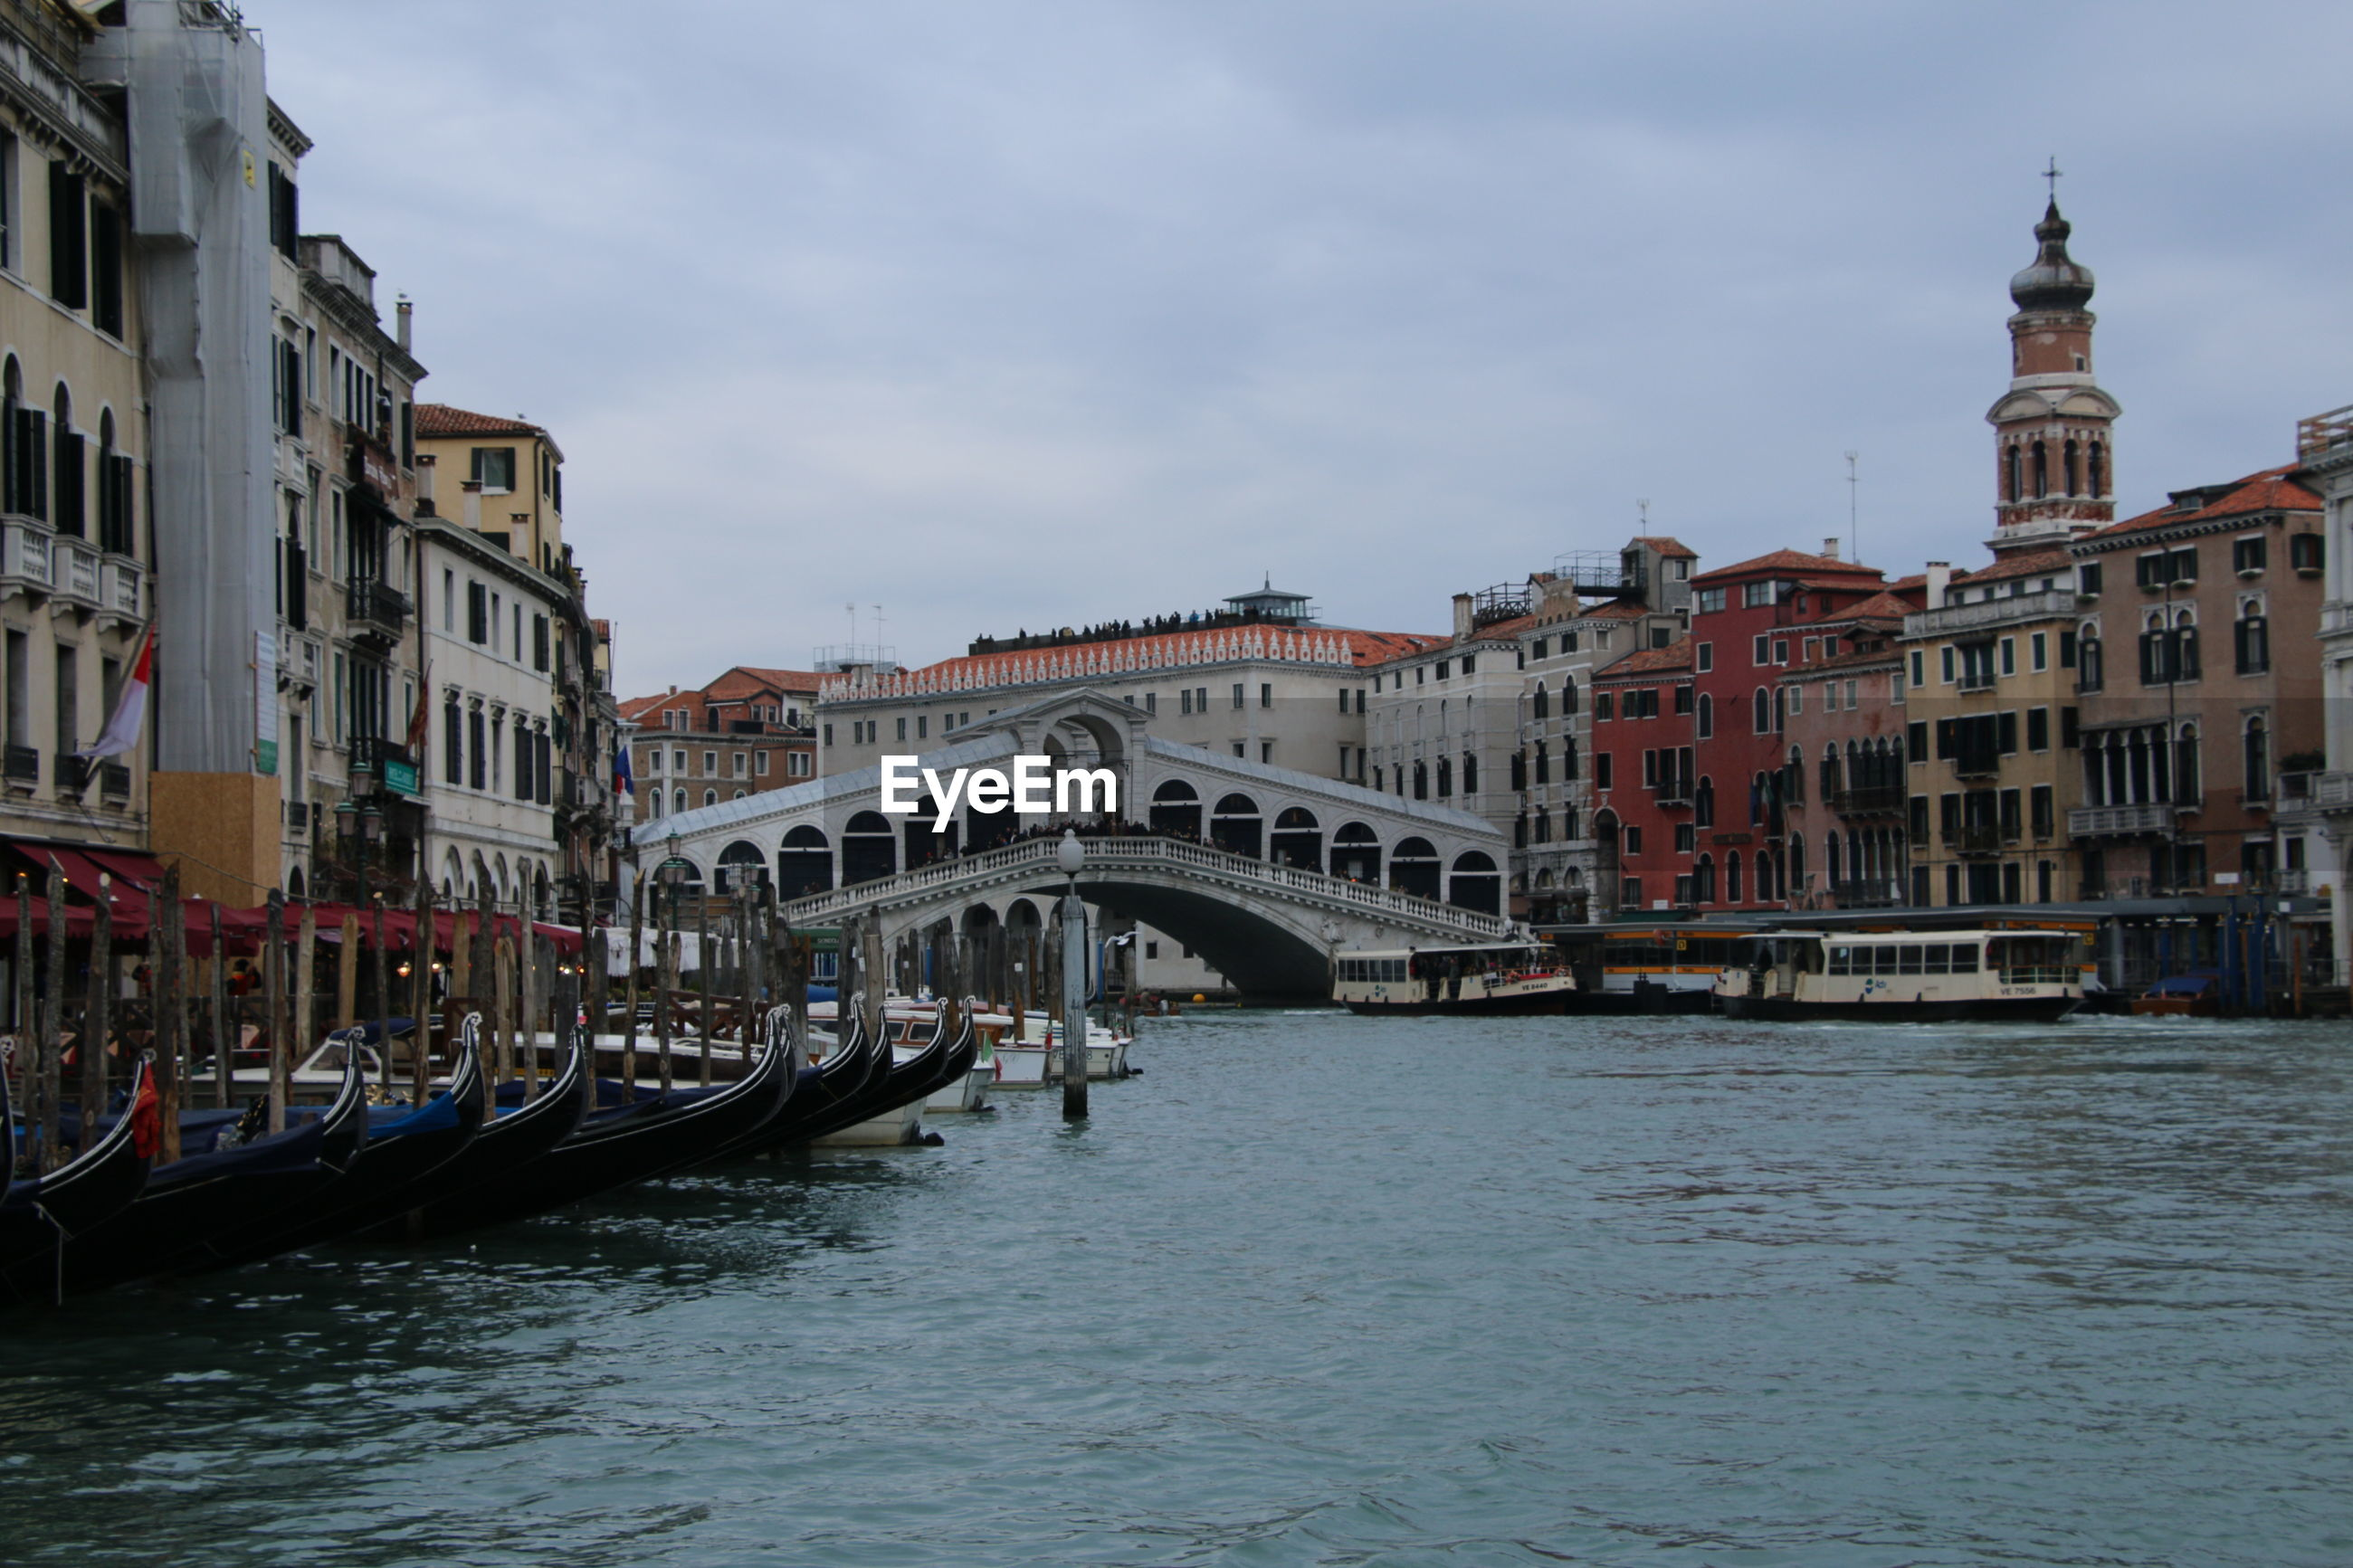 architecture, building exterior, cultures, built structure, travel destinations, canal, travel, bridge - man made structure, water, transportation, tourism, gondola - traditional boat, sky, nautical vessel, city, outdoors, no people, gondolier, day